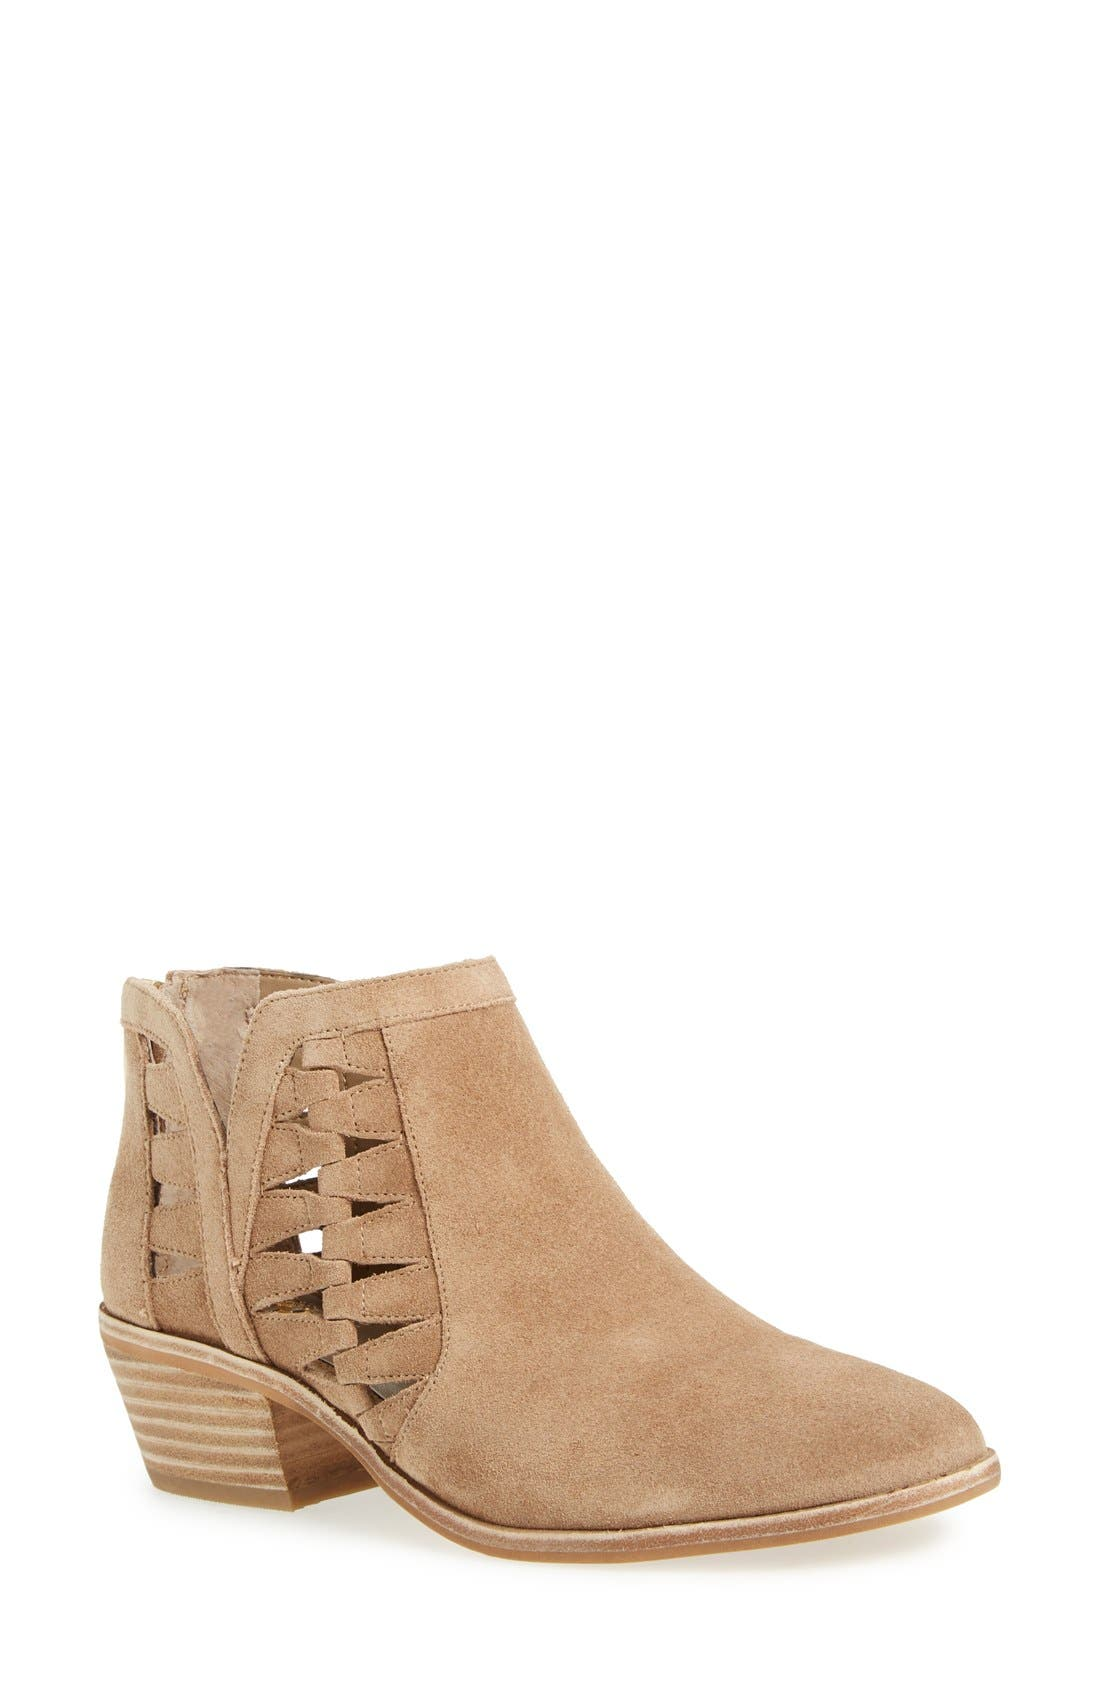 Main Image - Vince Camuto 'Peera' Cutout Bootie (Women) (Nordstrom Exclusive)